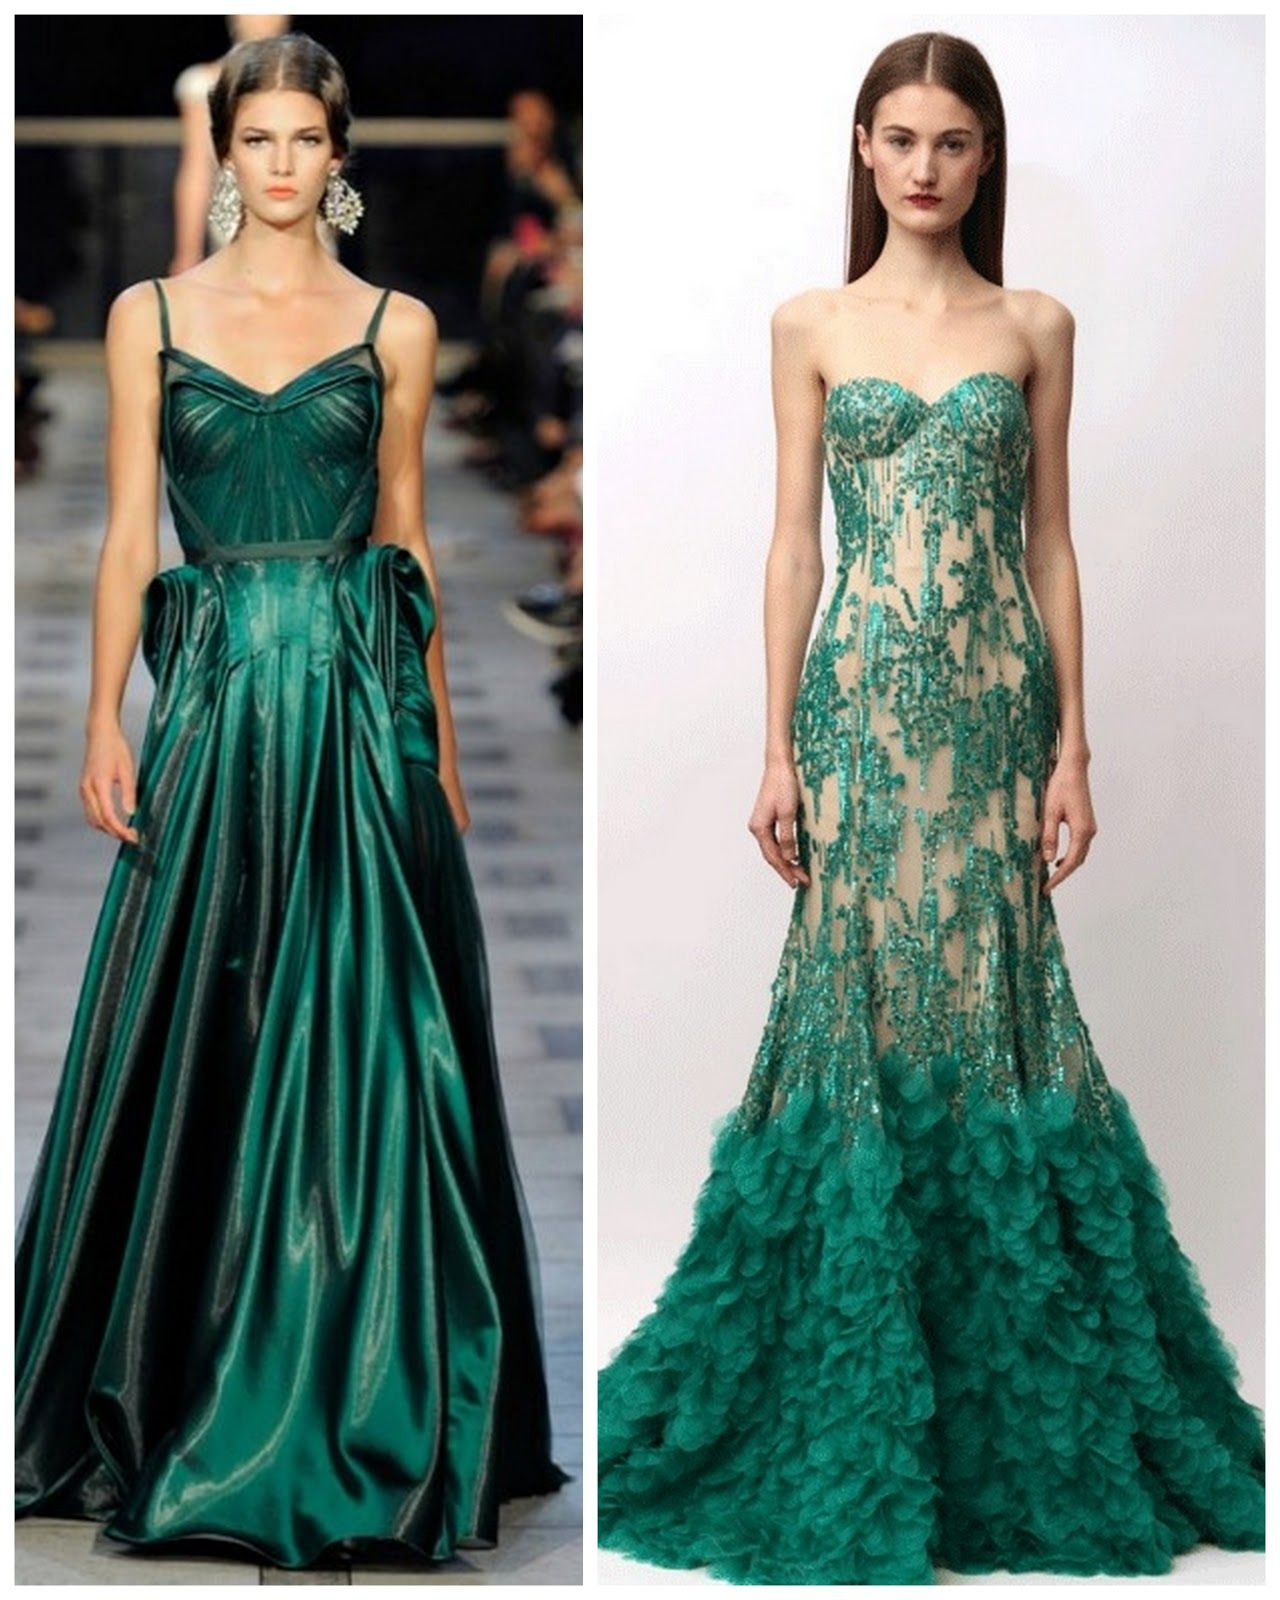 Emerald Romona Keveza gown would make a lovely bridesmaid dress ...